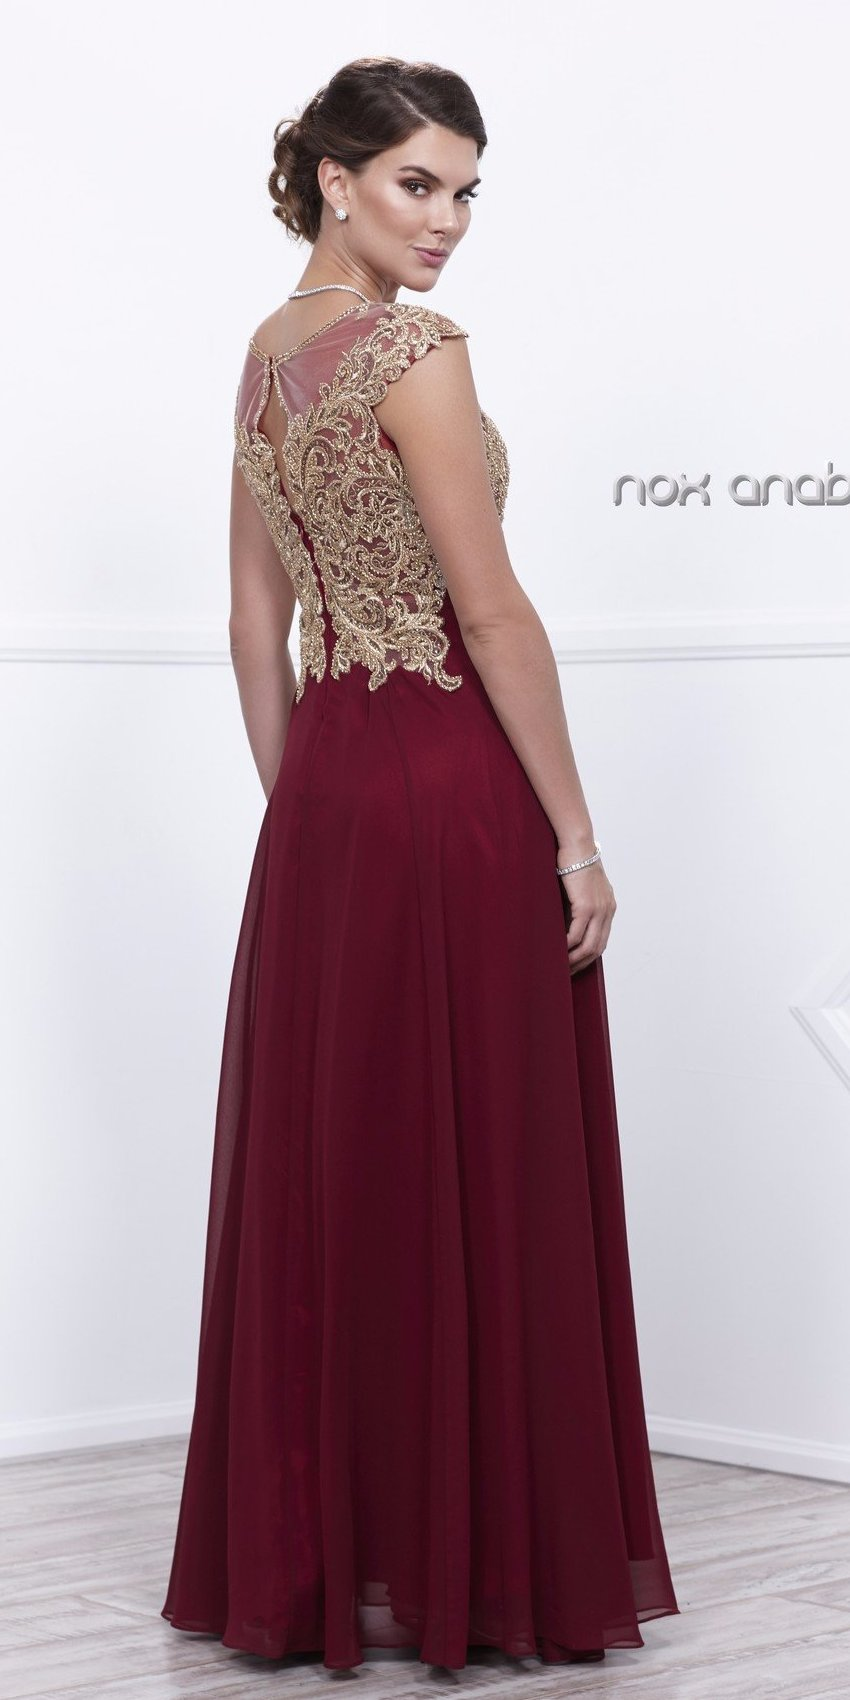 Cap Sleeves Appliqued Bodice Burgundy Chiffon Formal Dress Long Back View